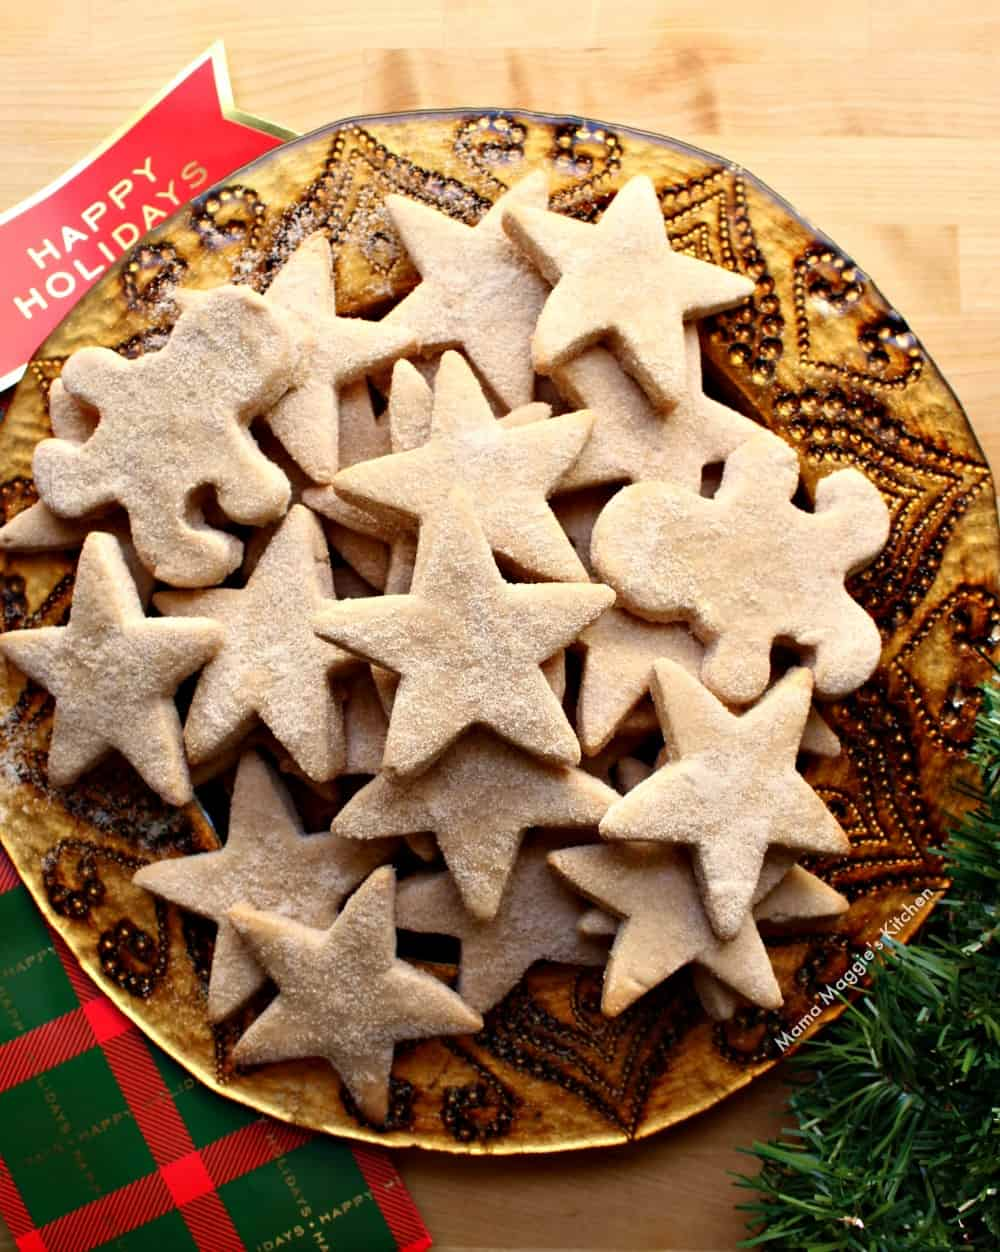 Mexican shortbread cookies on a gold, round plate next to Christmas decorations.